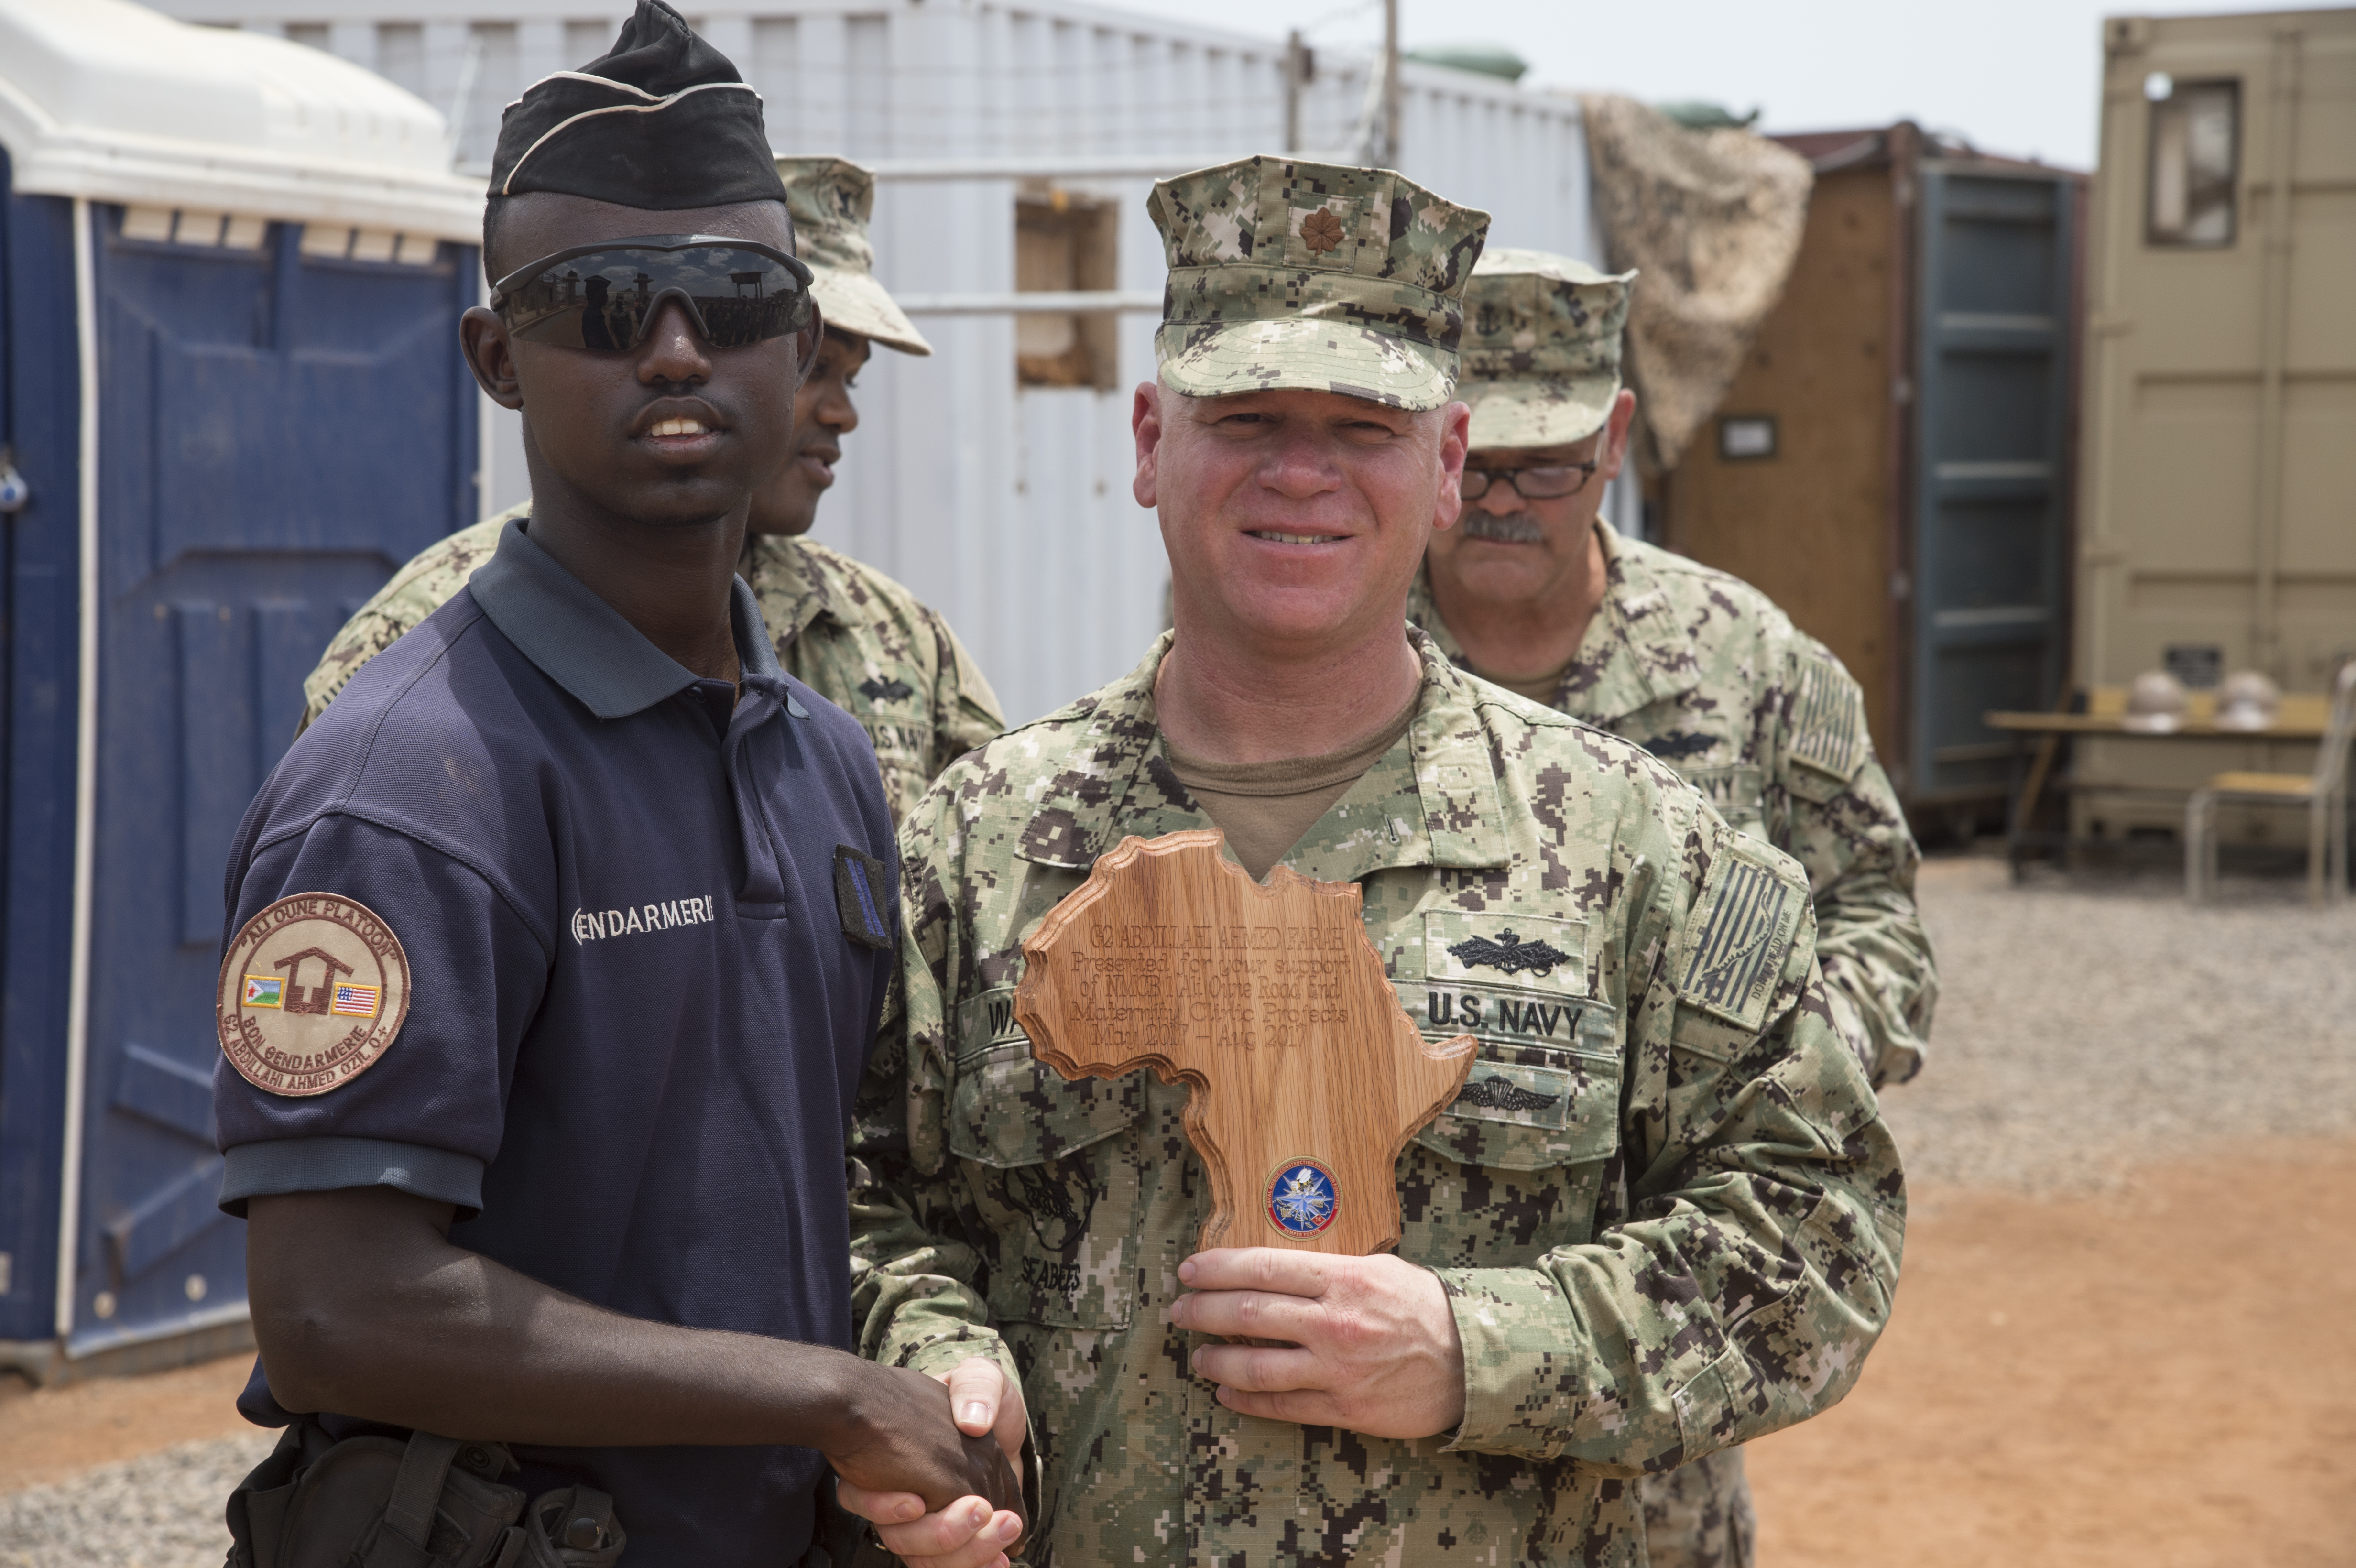 Naval Mobile Construction Battalion ONE officer-in-charge U.S. Navy Lt. Cmdr. Jason Ward recognizes Djiboutian Gendarmerie Abdillahi Ahmed Farah for securing Seabees assigned to Combined Joint Task Force-Horn of Africa while they worked on a construction site at a remote village in the Arta region of Djibouti, Aug.  17, 2017. The project was started by NMCB 1, now replaced by NMCB 133, who will continue working on the project. (U.S. Air National Guard photo by Tech. Sgt. Joseph Harwood)